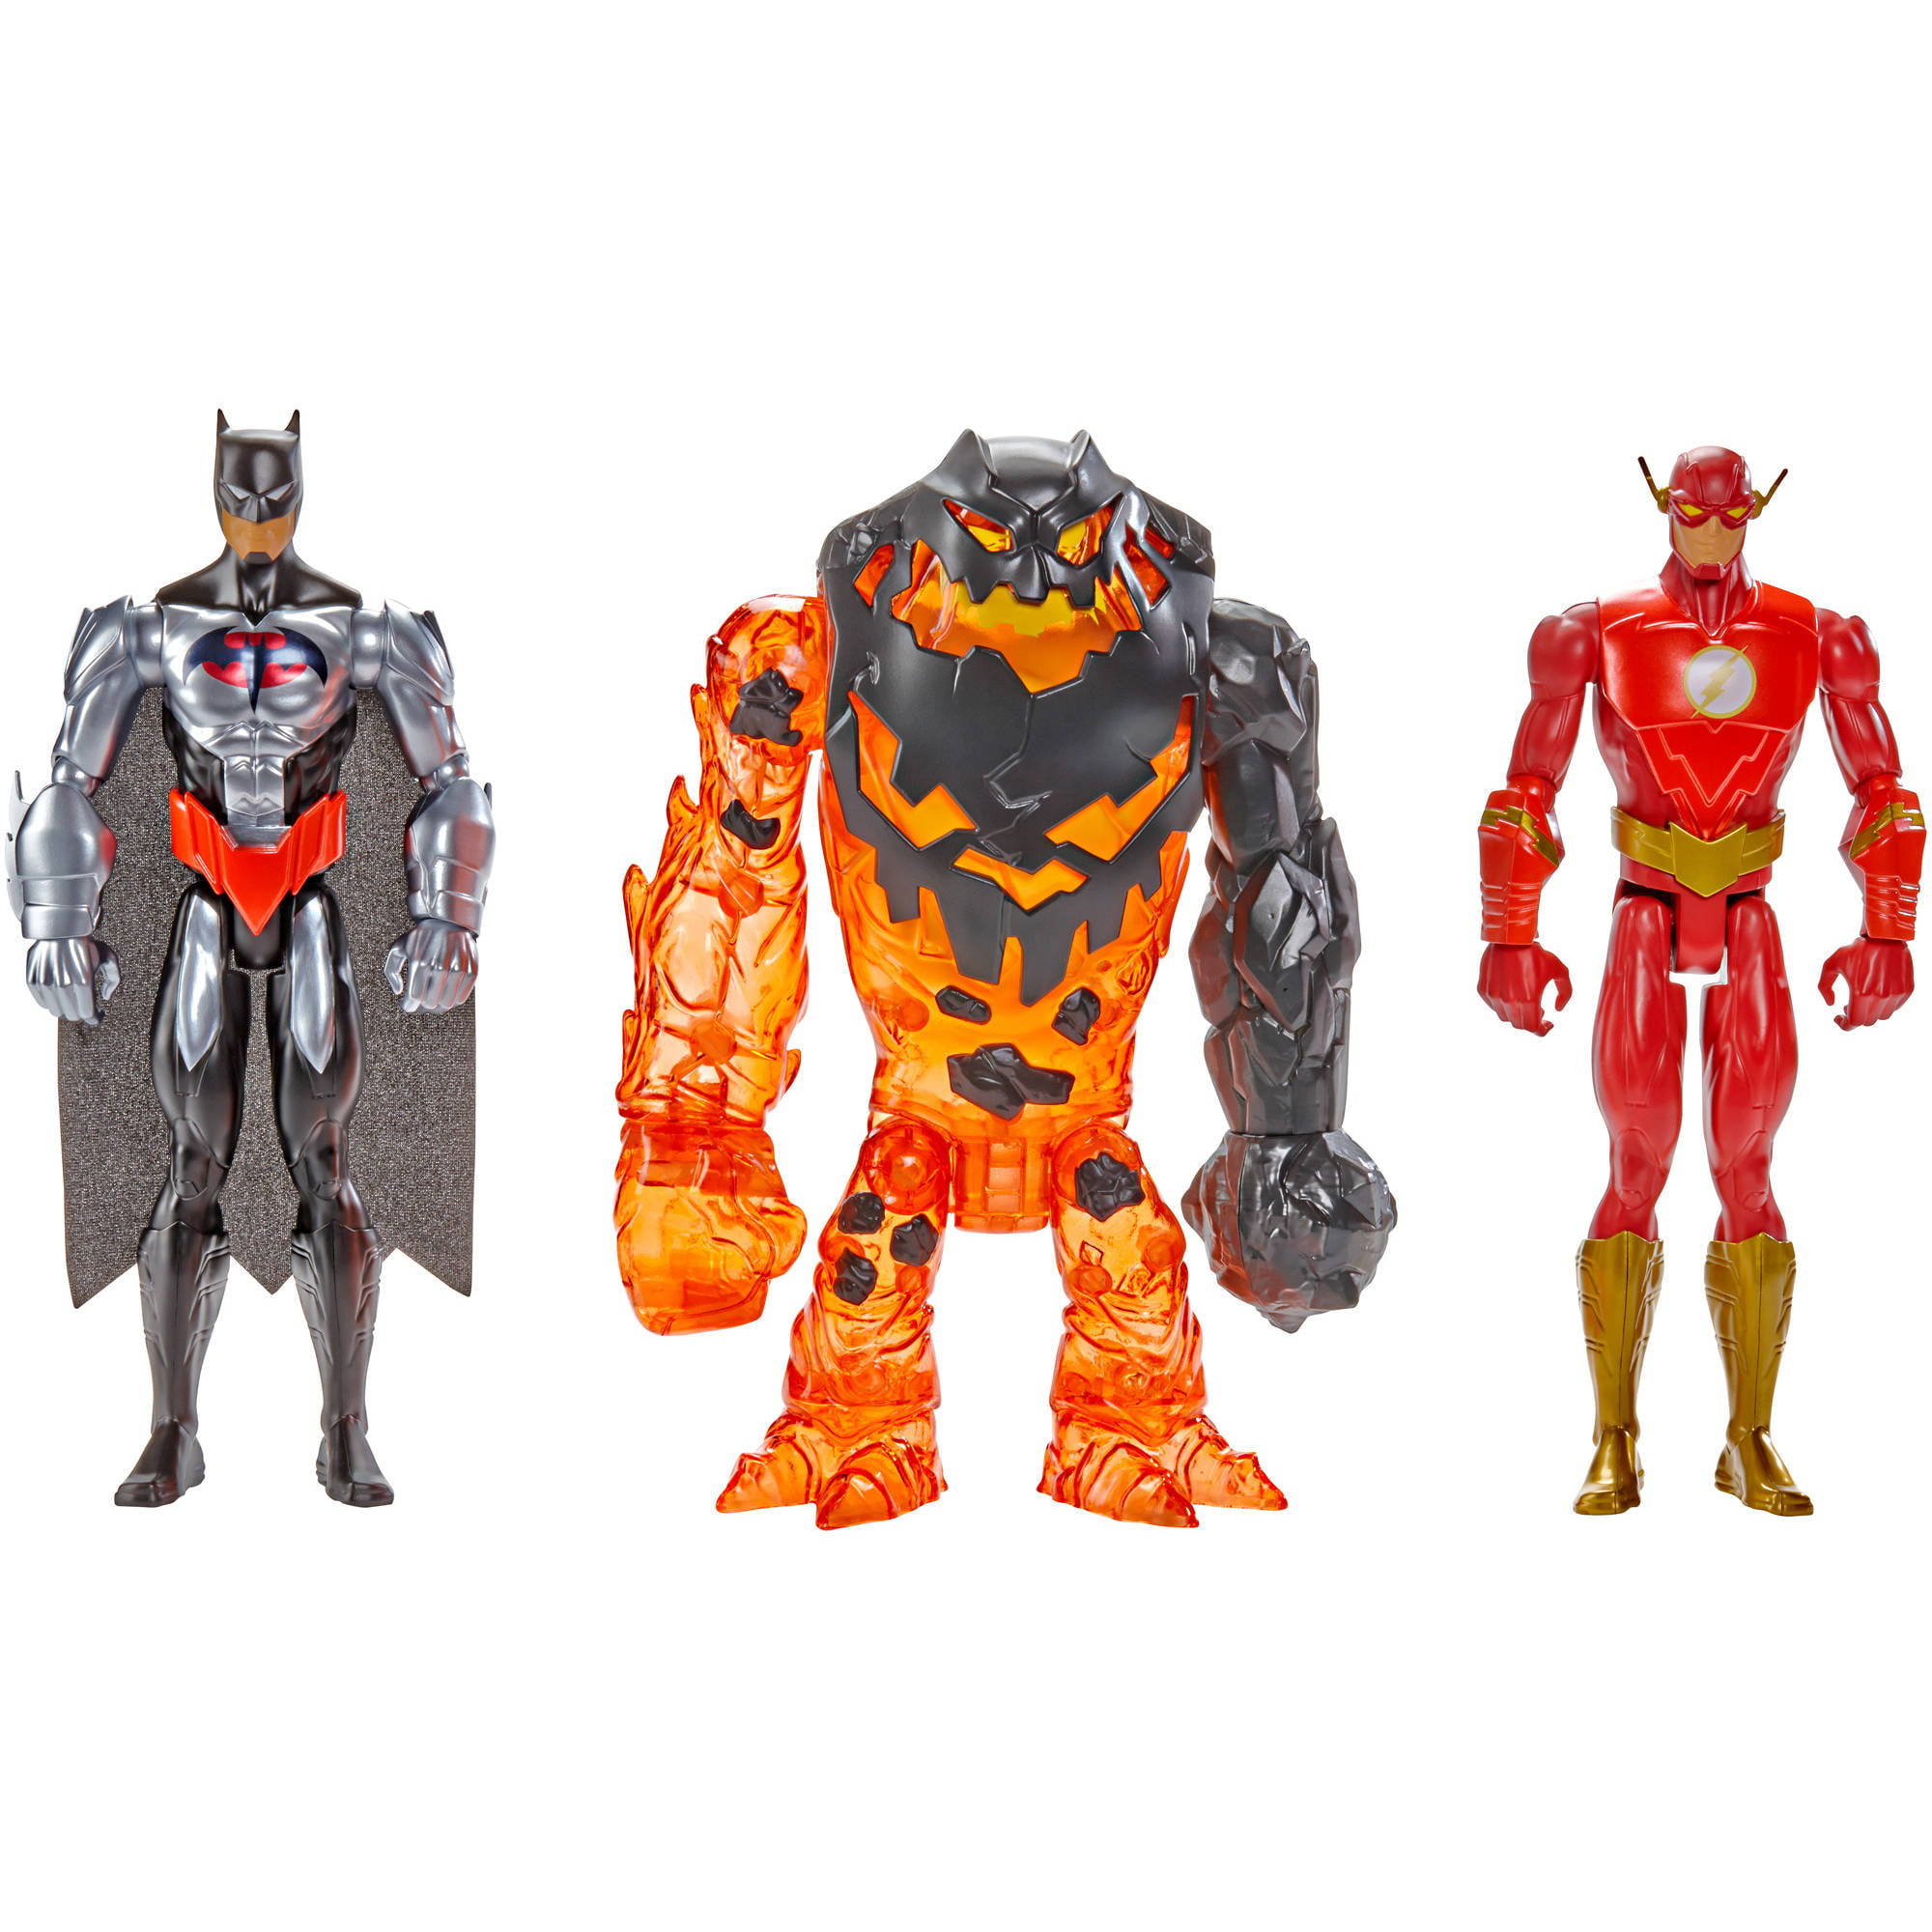 Batman Unlimited Molten Mayhem Batman & The Flash Vs Clayface Figure 3Pk by Mattel